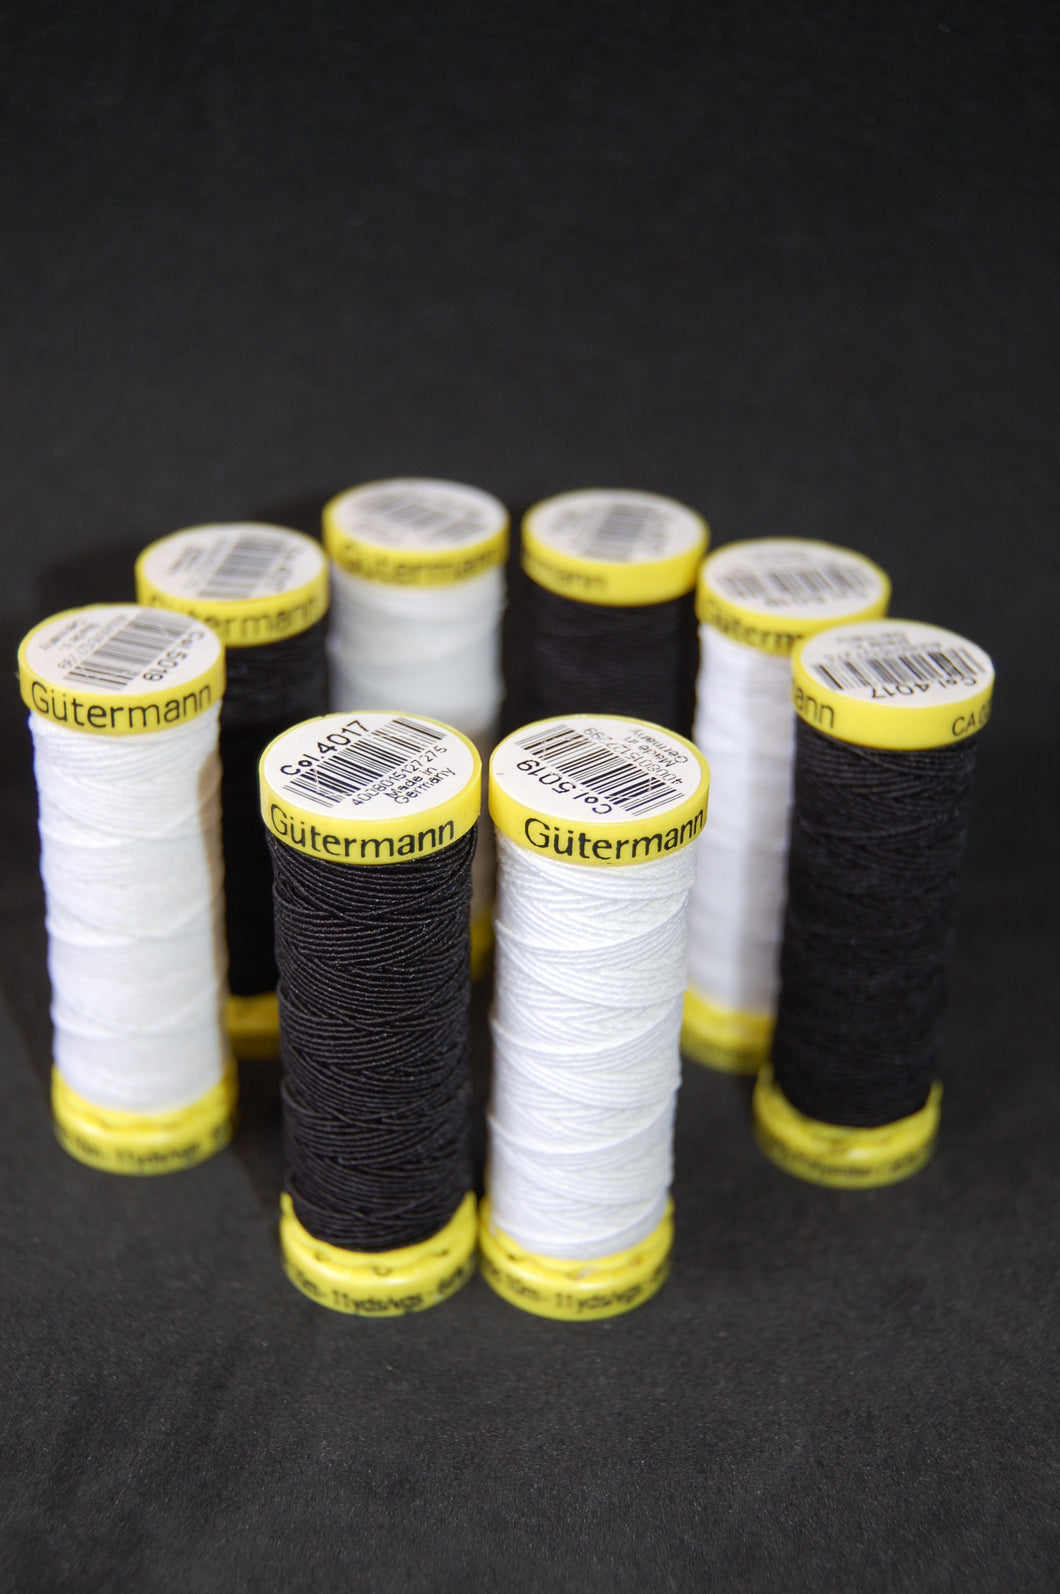 Fabric Shack Sewing Sew Cotton Shirring Shiring Elastic Black White Dressmaking Gutermann 10 Metres M